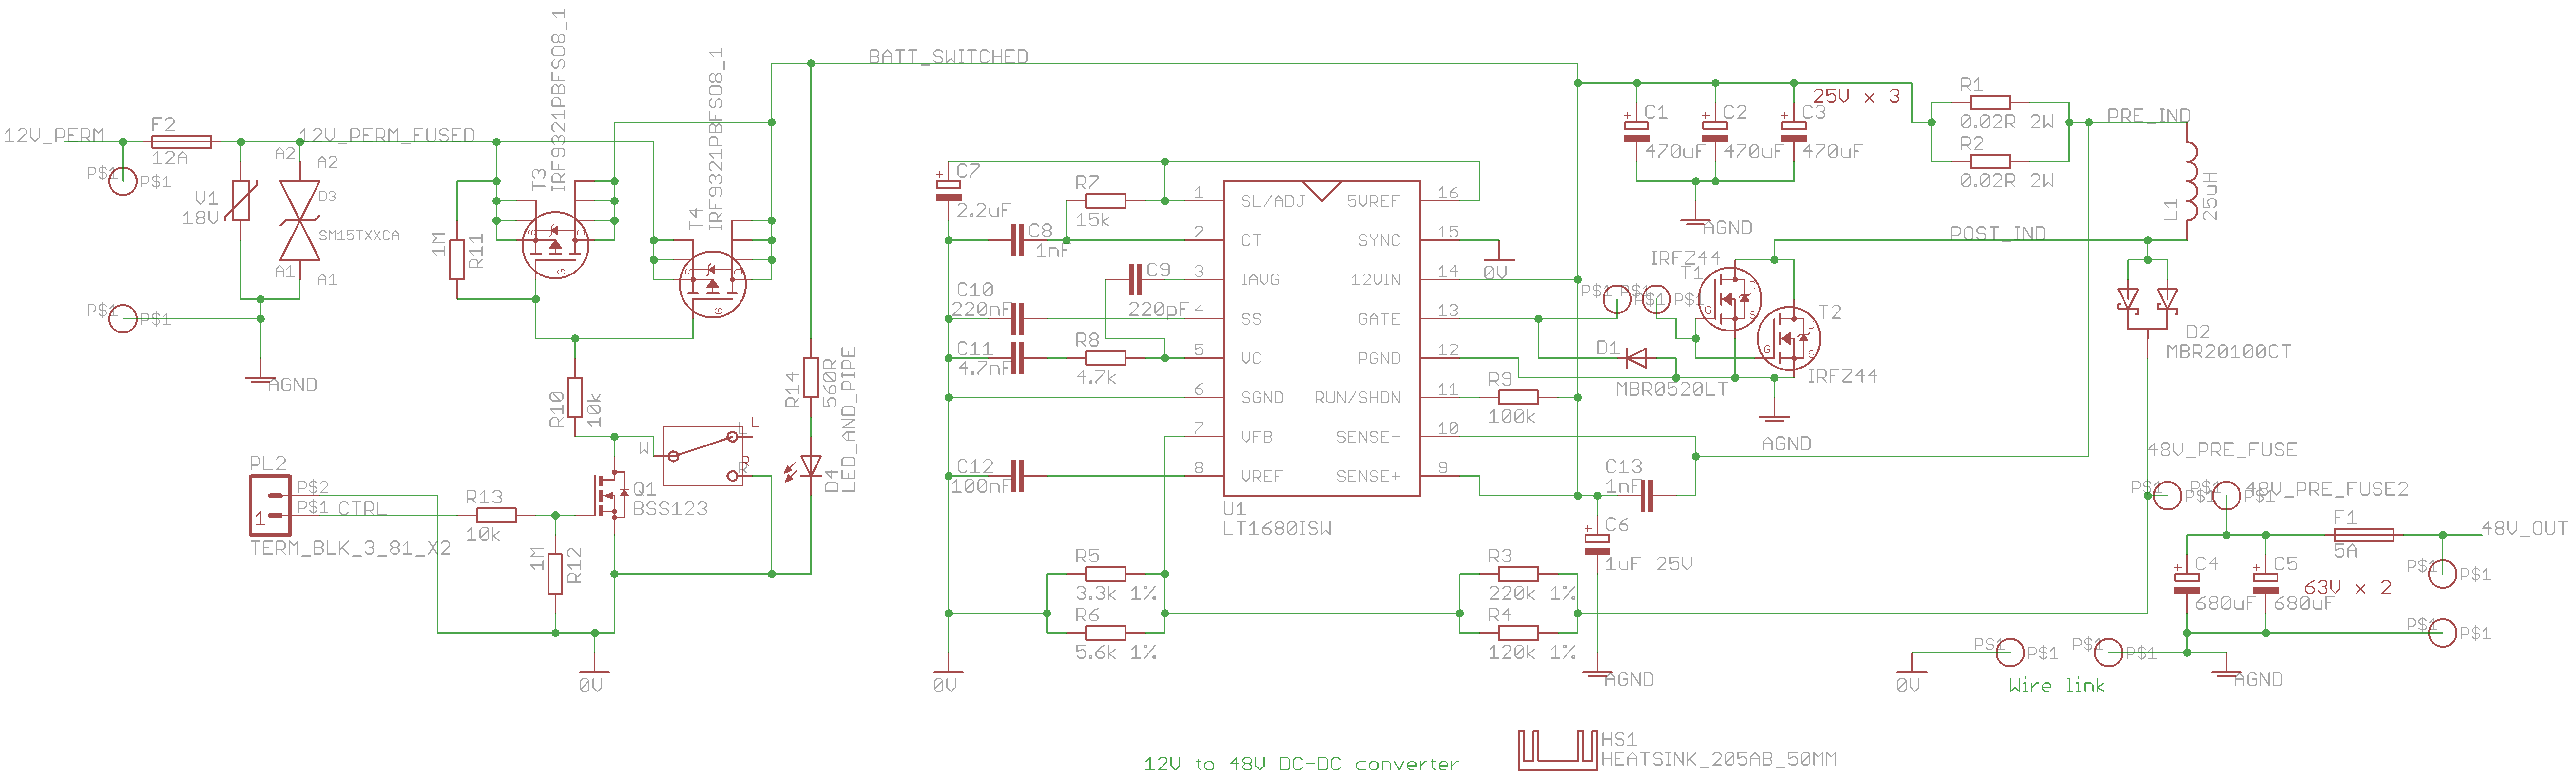 48v 150w Power Supply 12v Step Up Badcafe Dc To Converter Circuit Diagram This Is The